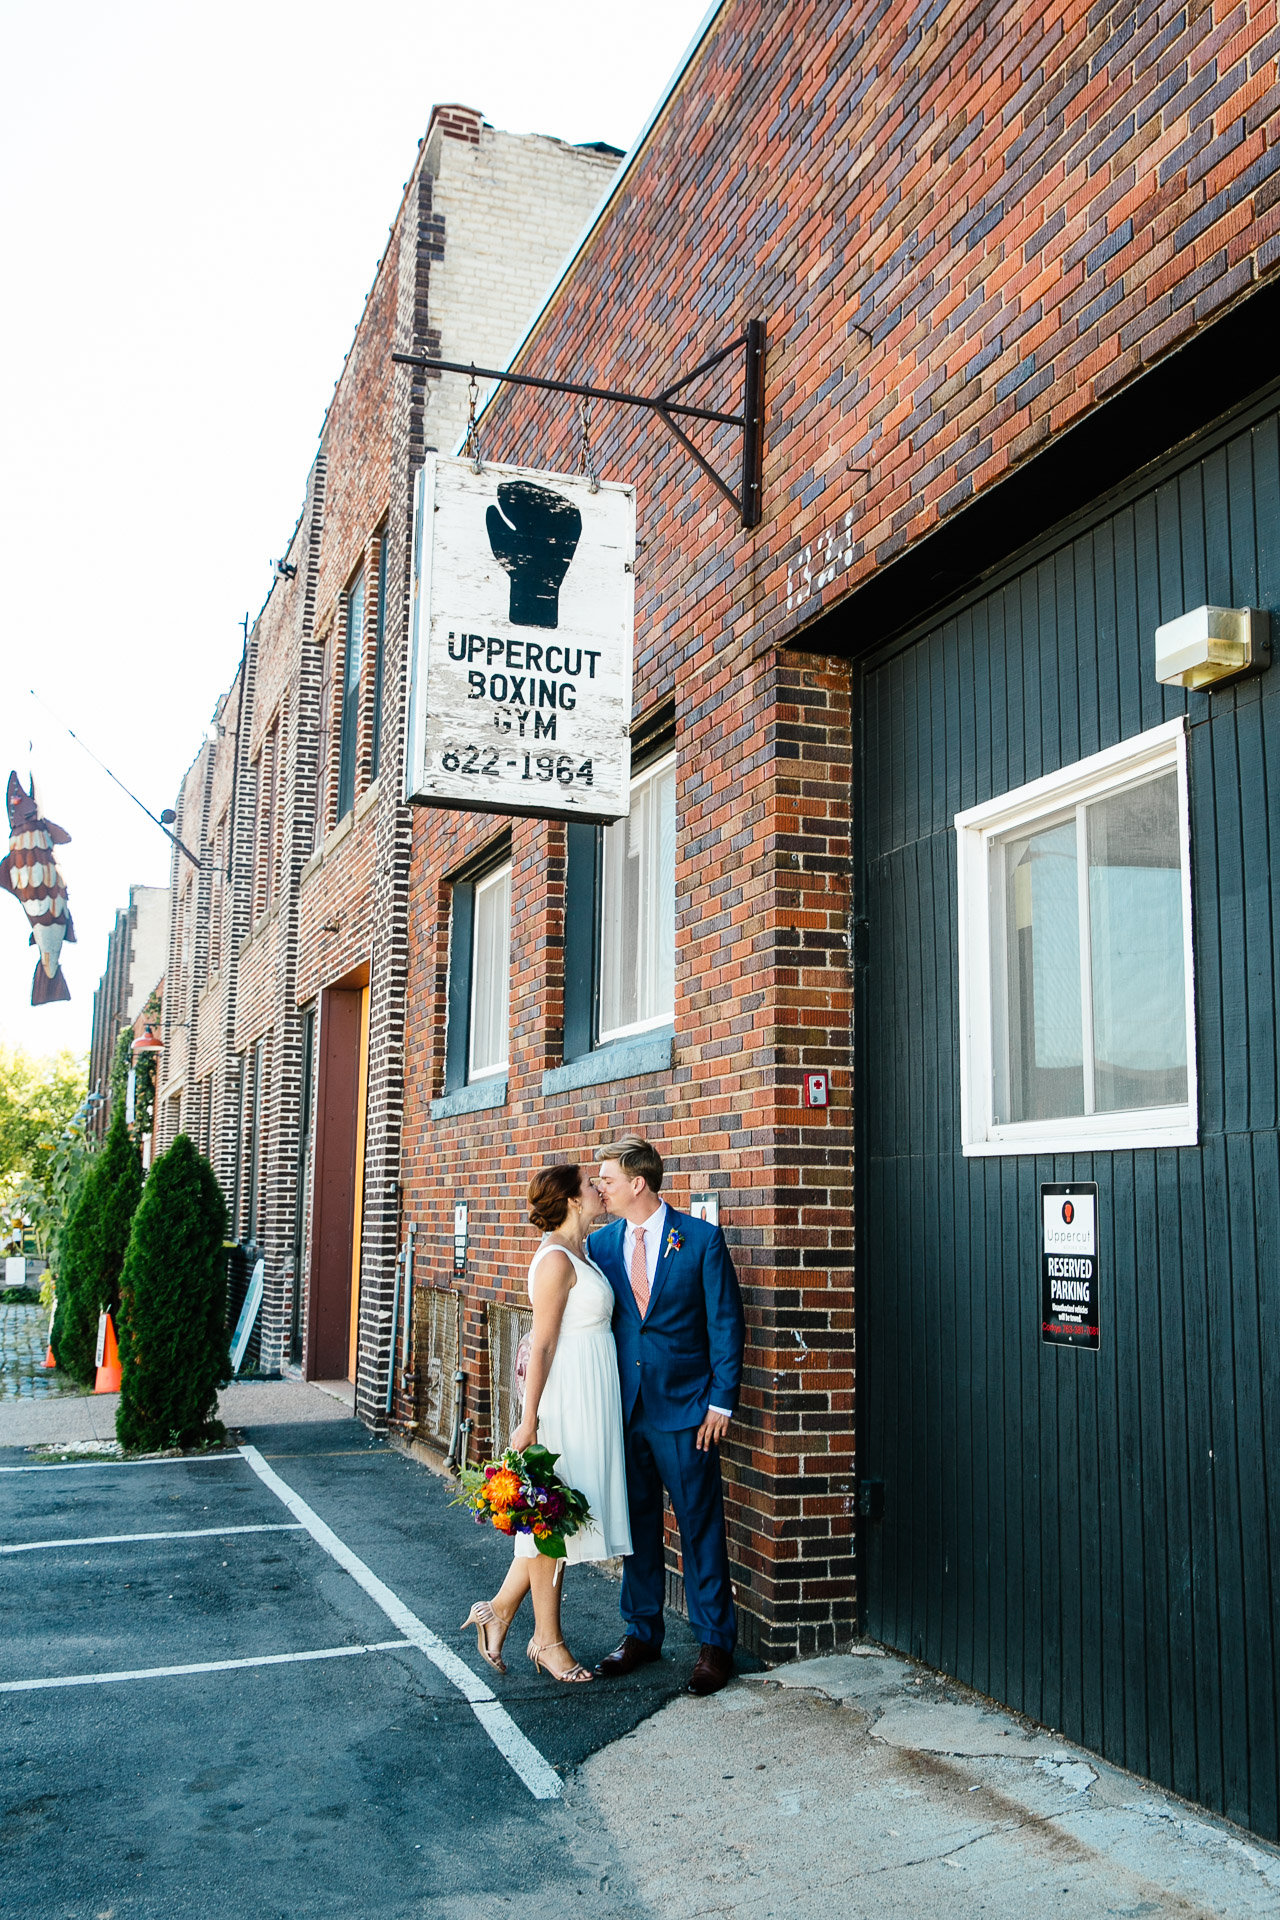 Vibrant Boxing Gym Wedding - Rocket Science Events